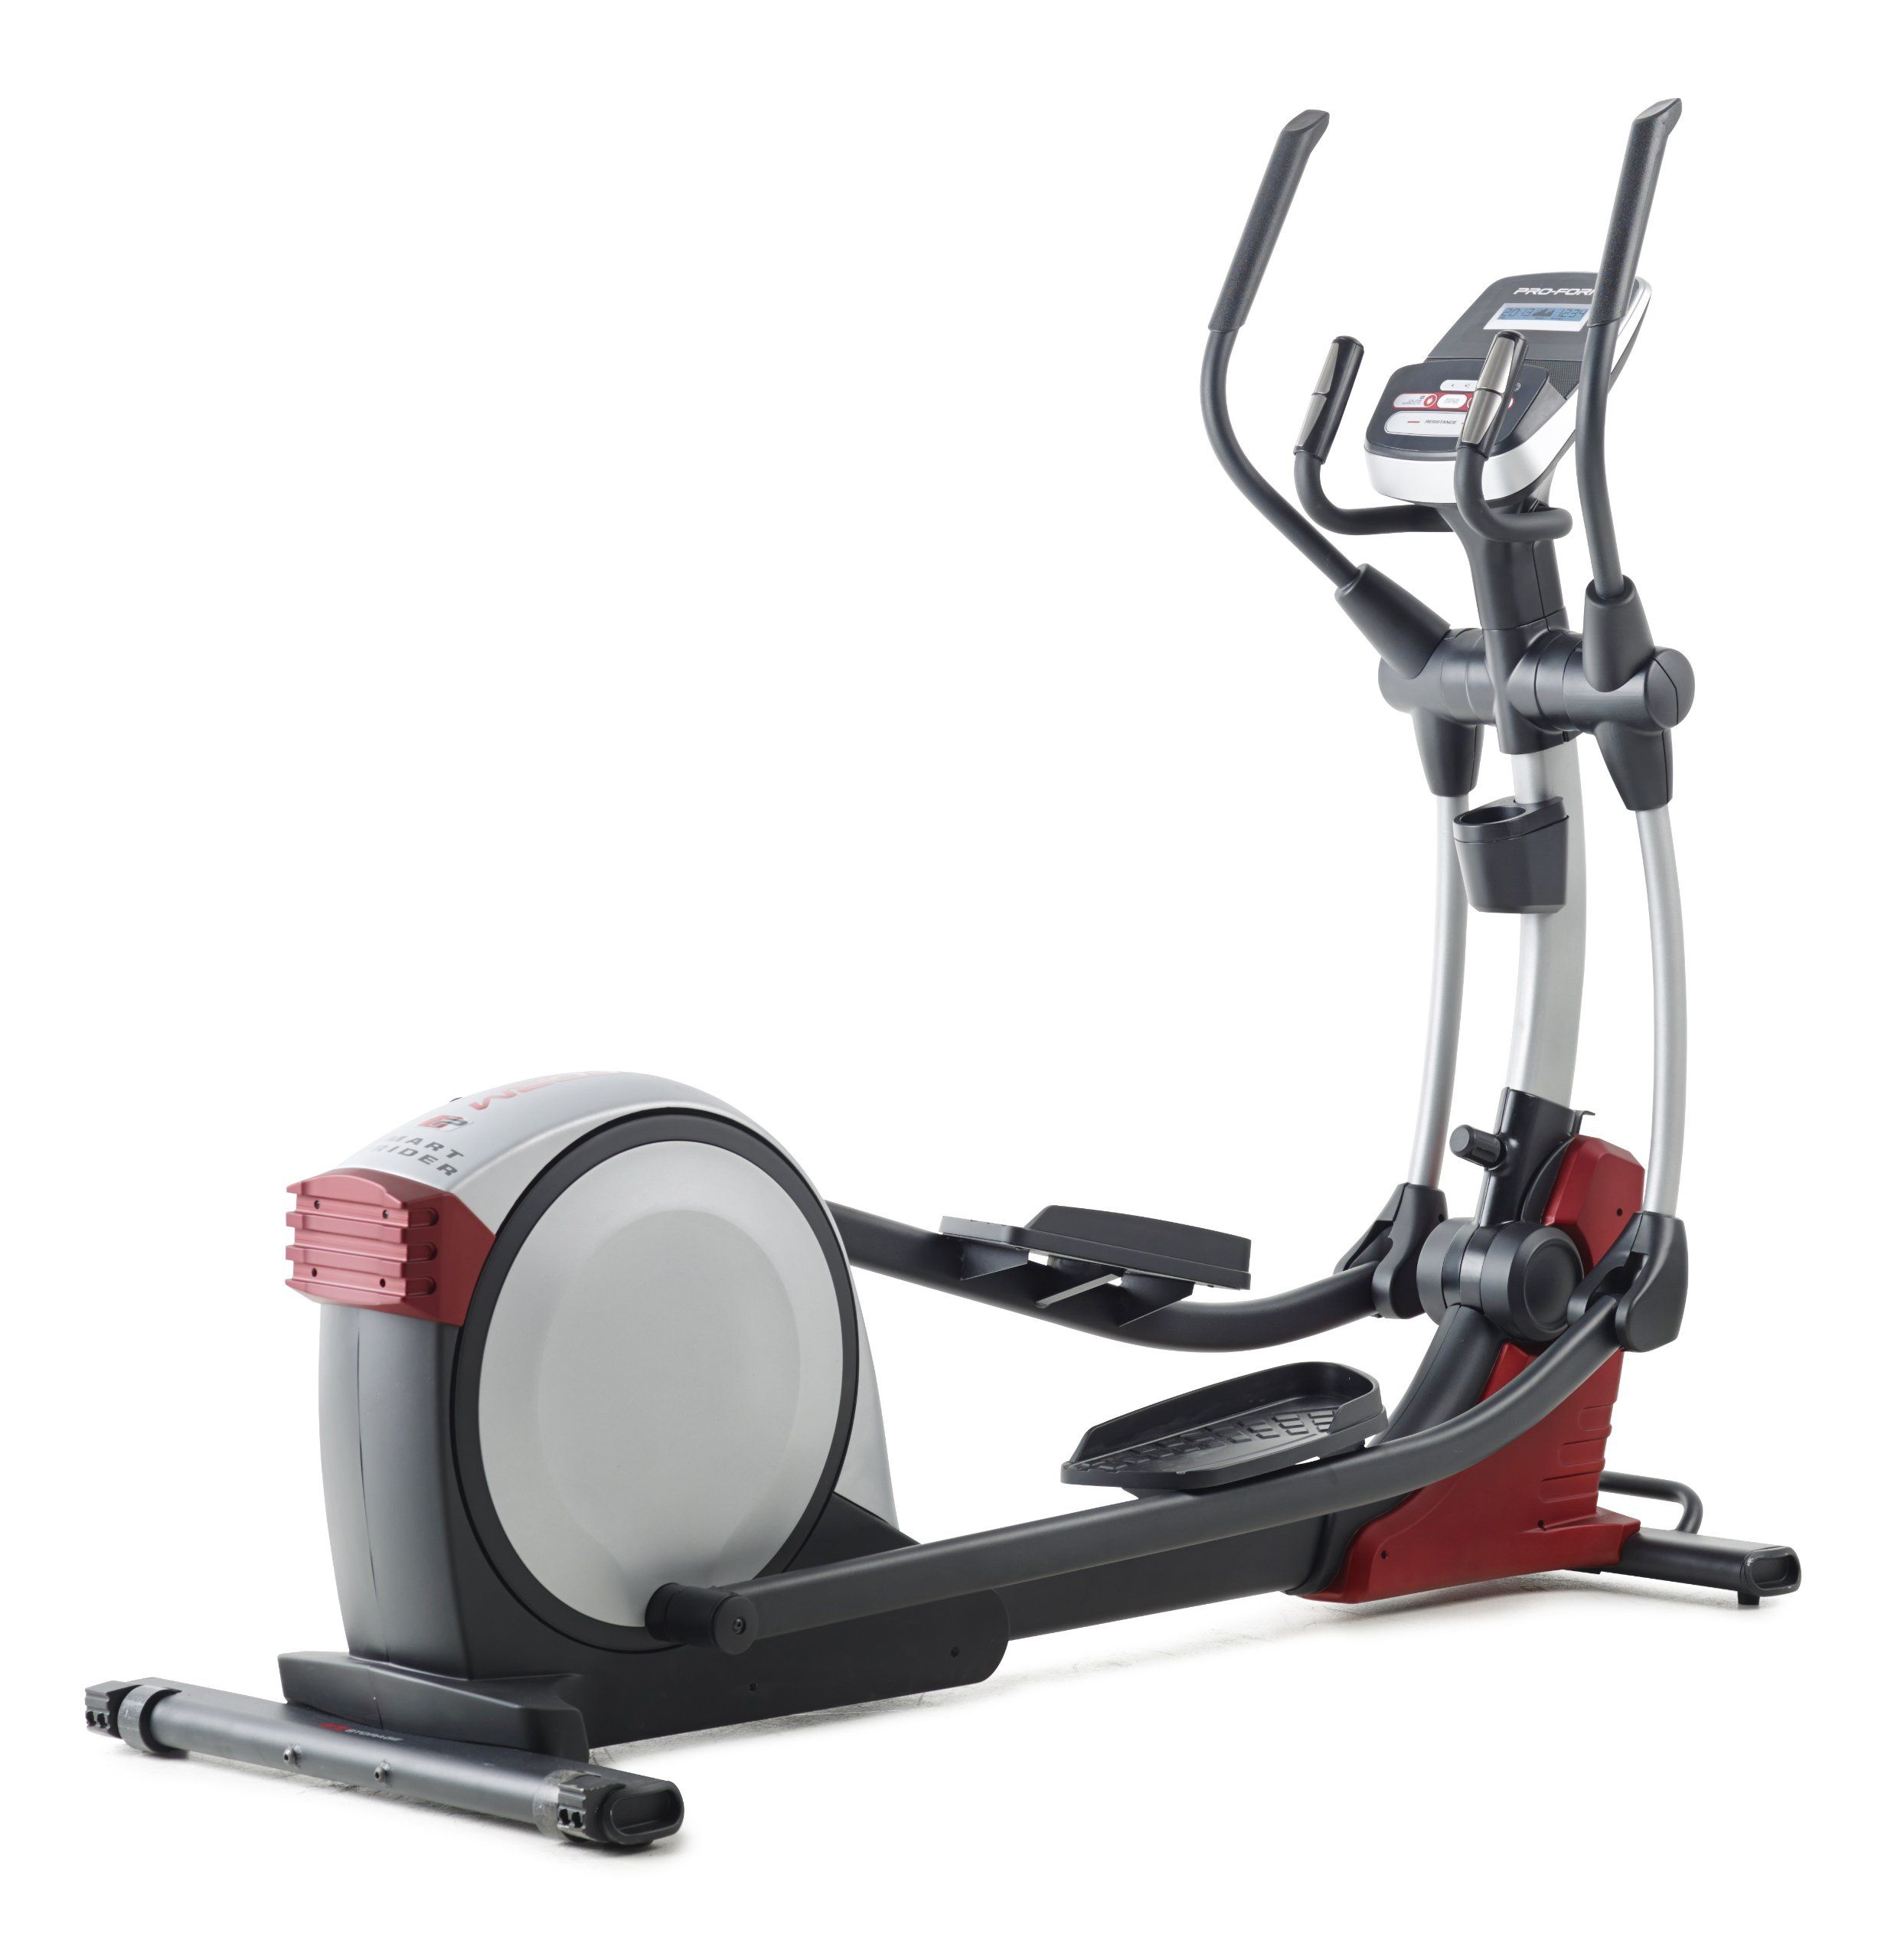 Best Of Most Popular Gym Equipment